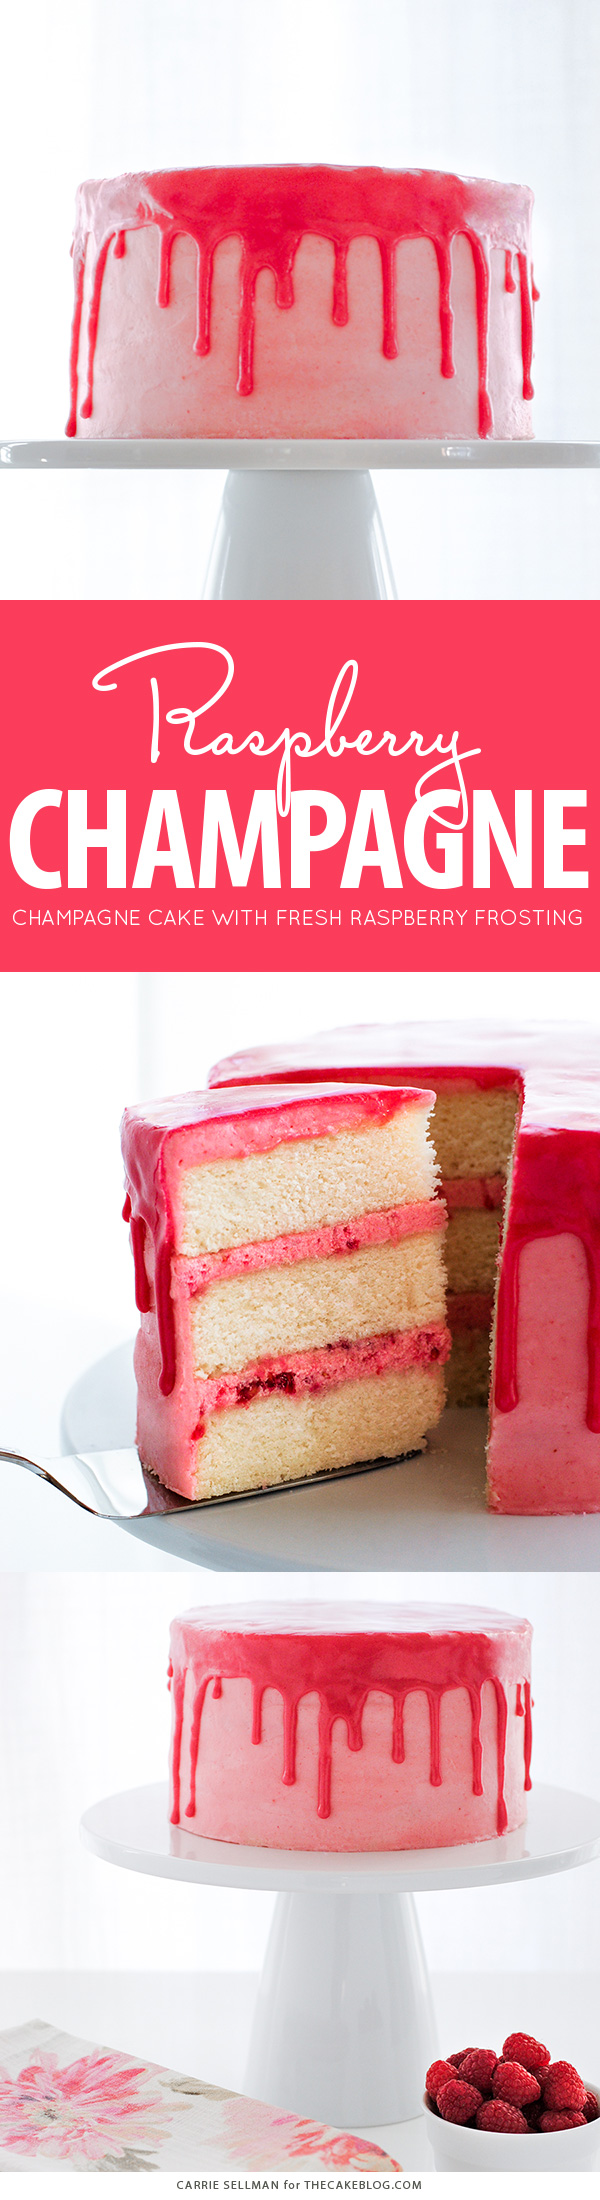 Champagne, berries and cream come together in this delicious Raspberry Champagne Cake.  Served with a drippy raspberry glaze and fresh raspberries.  By Carrie Sellman for TheCakeBlog.com.